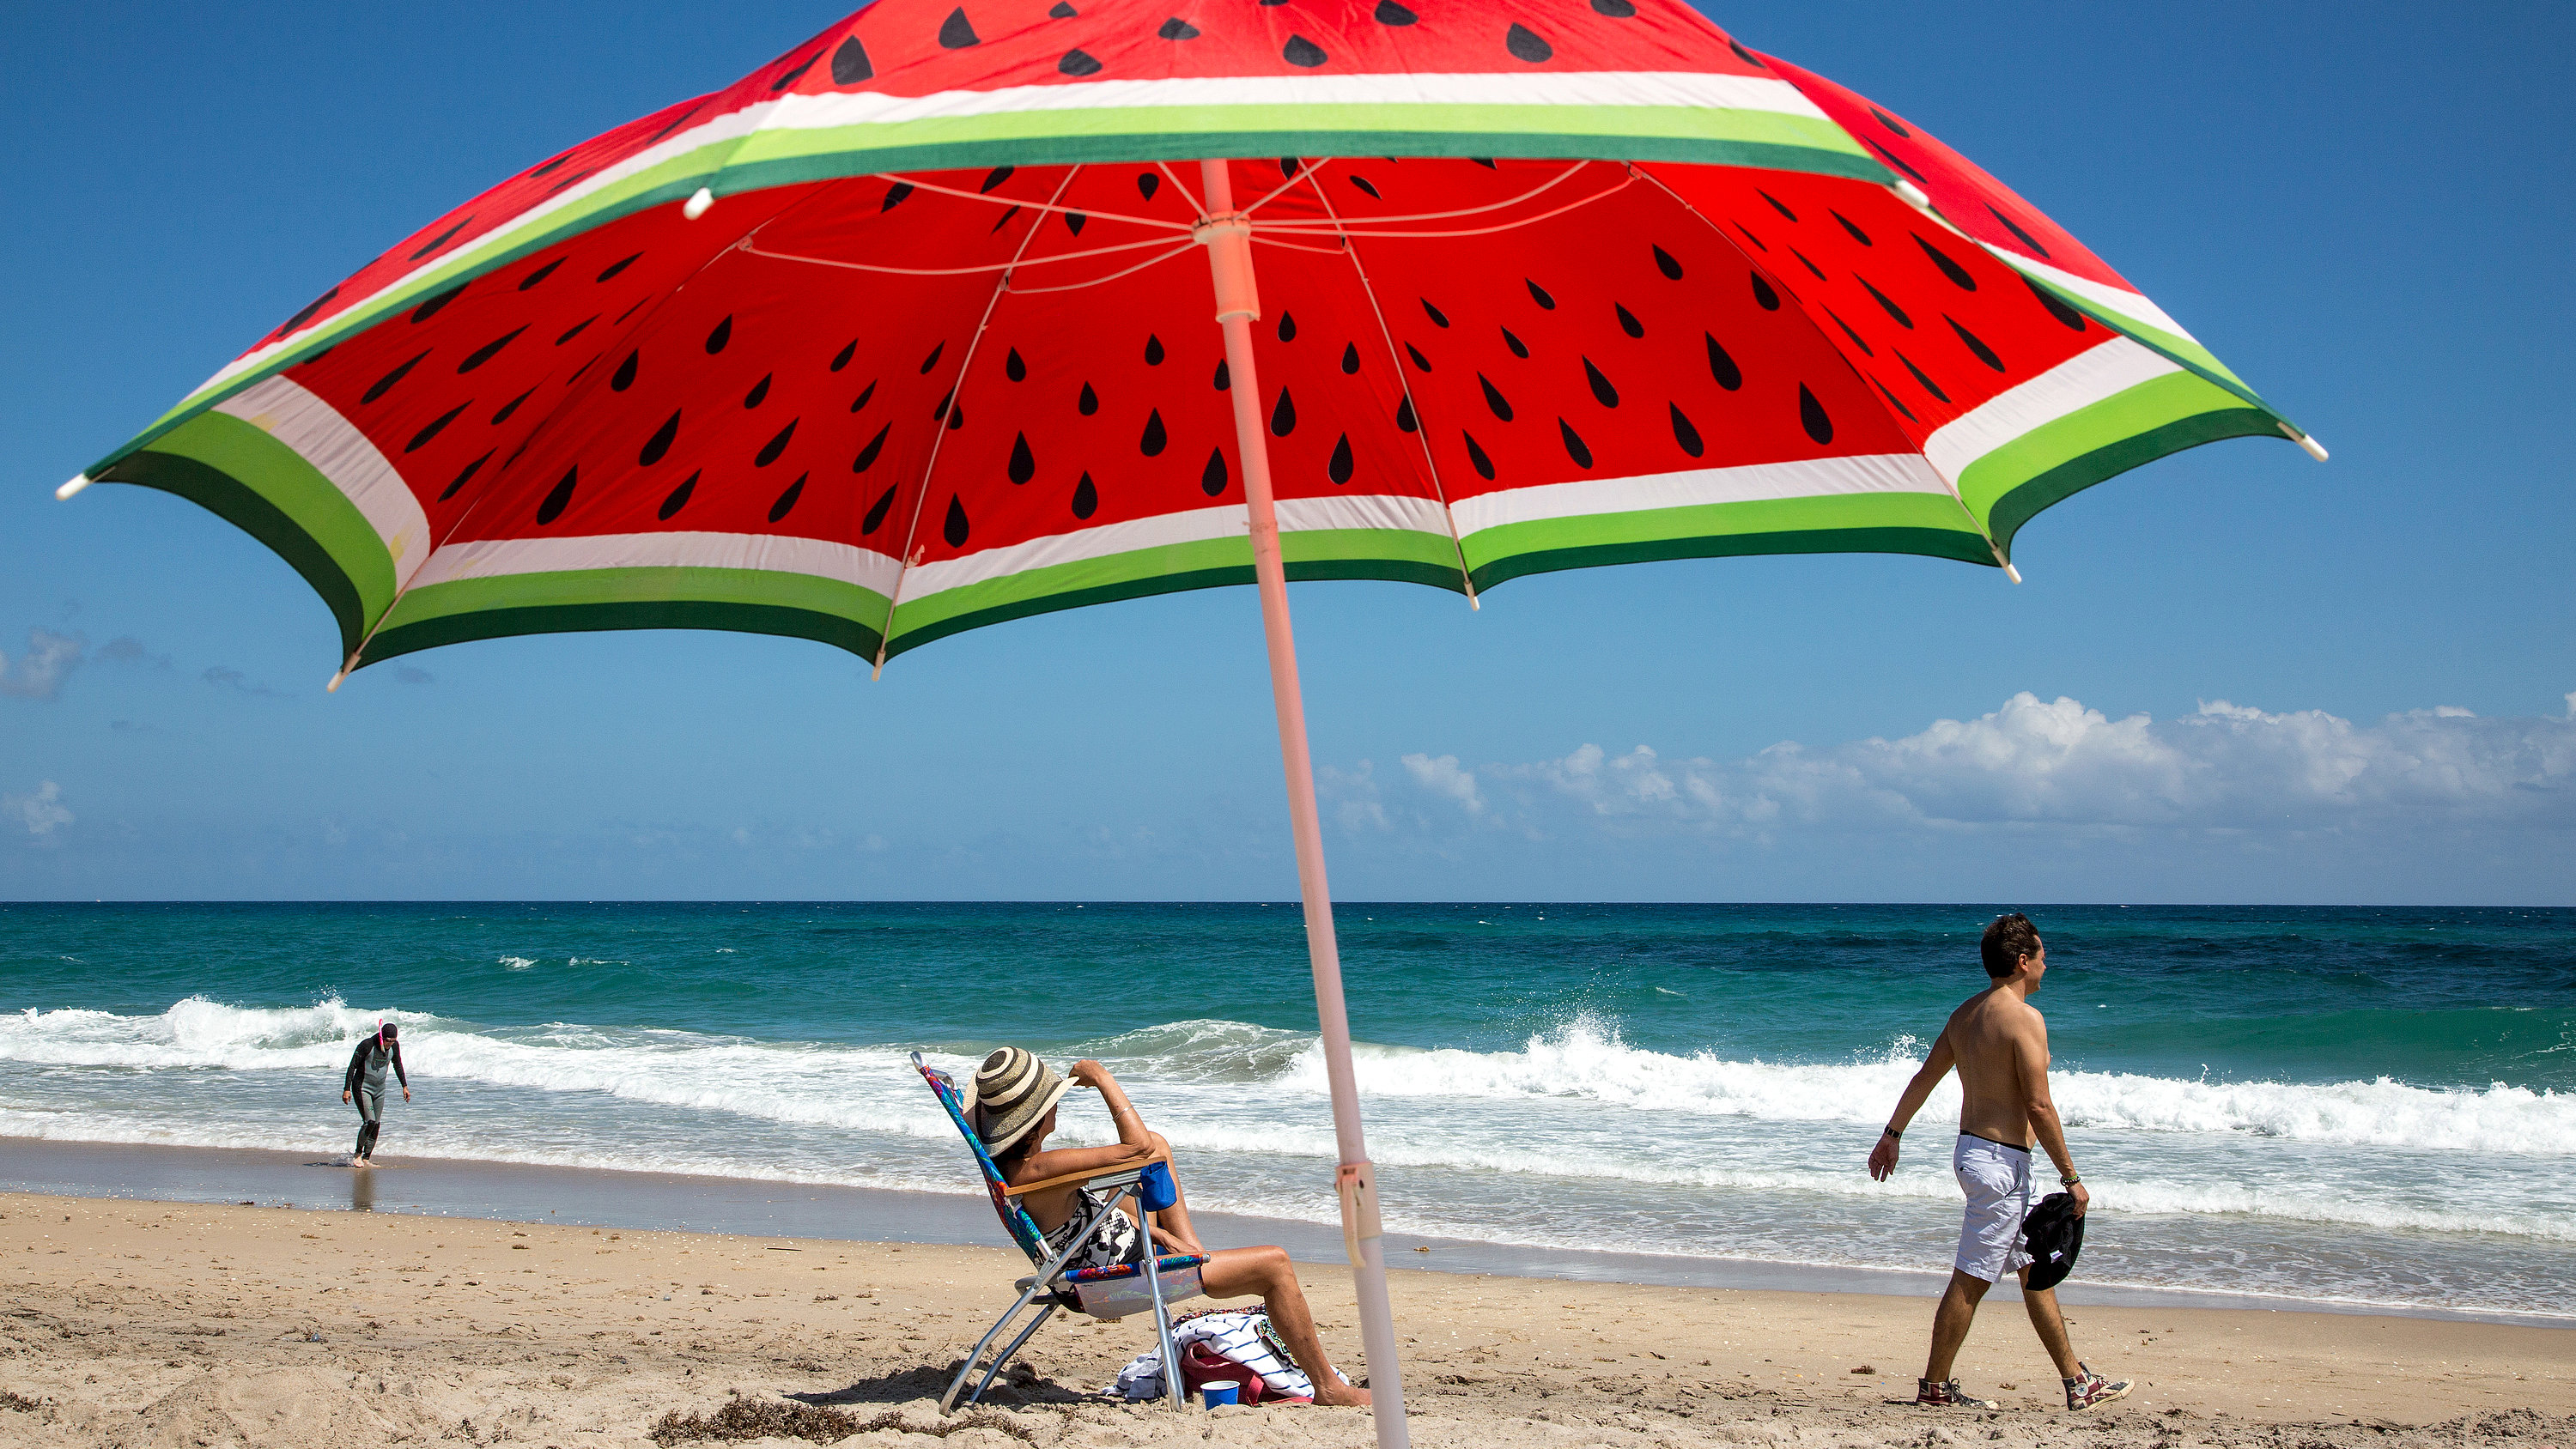 36 Hours In Palm Beach, Fla. With Palm Beach County Spring Break 2015